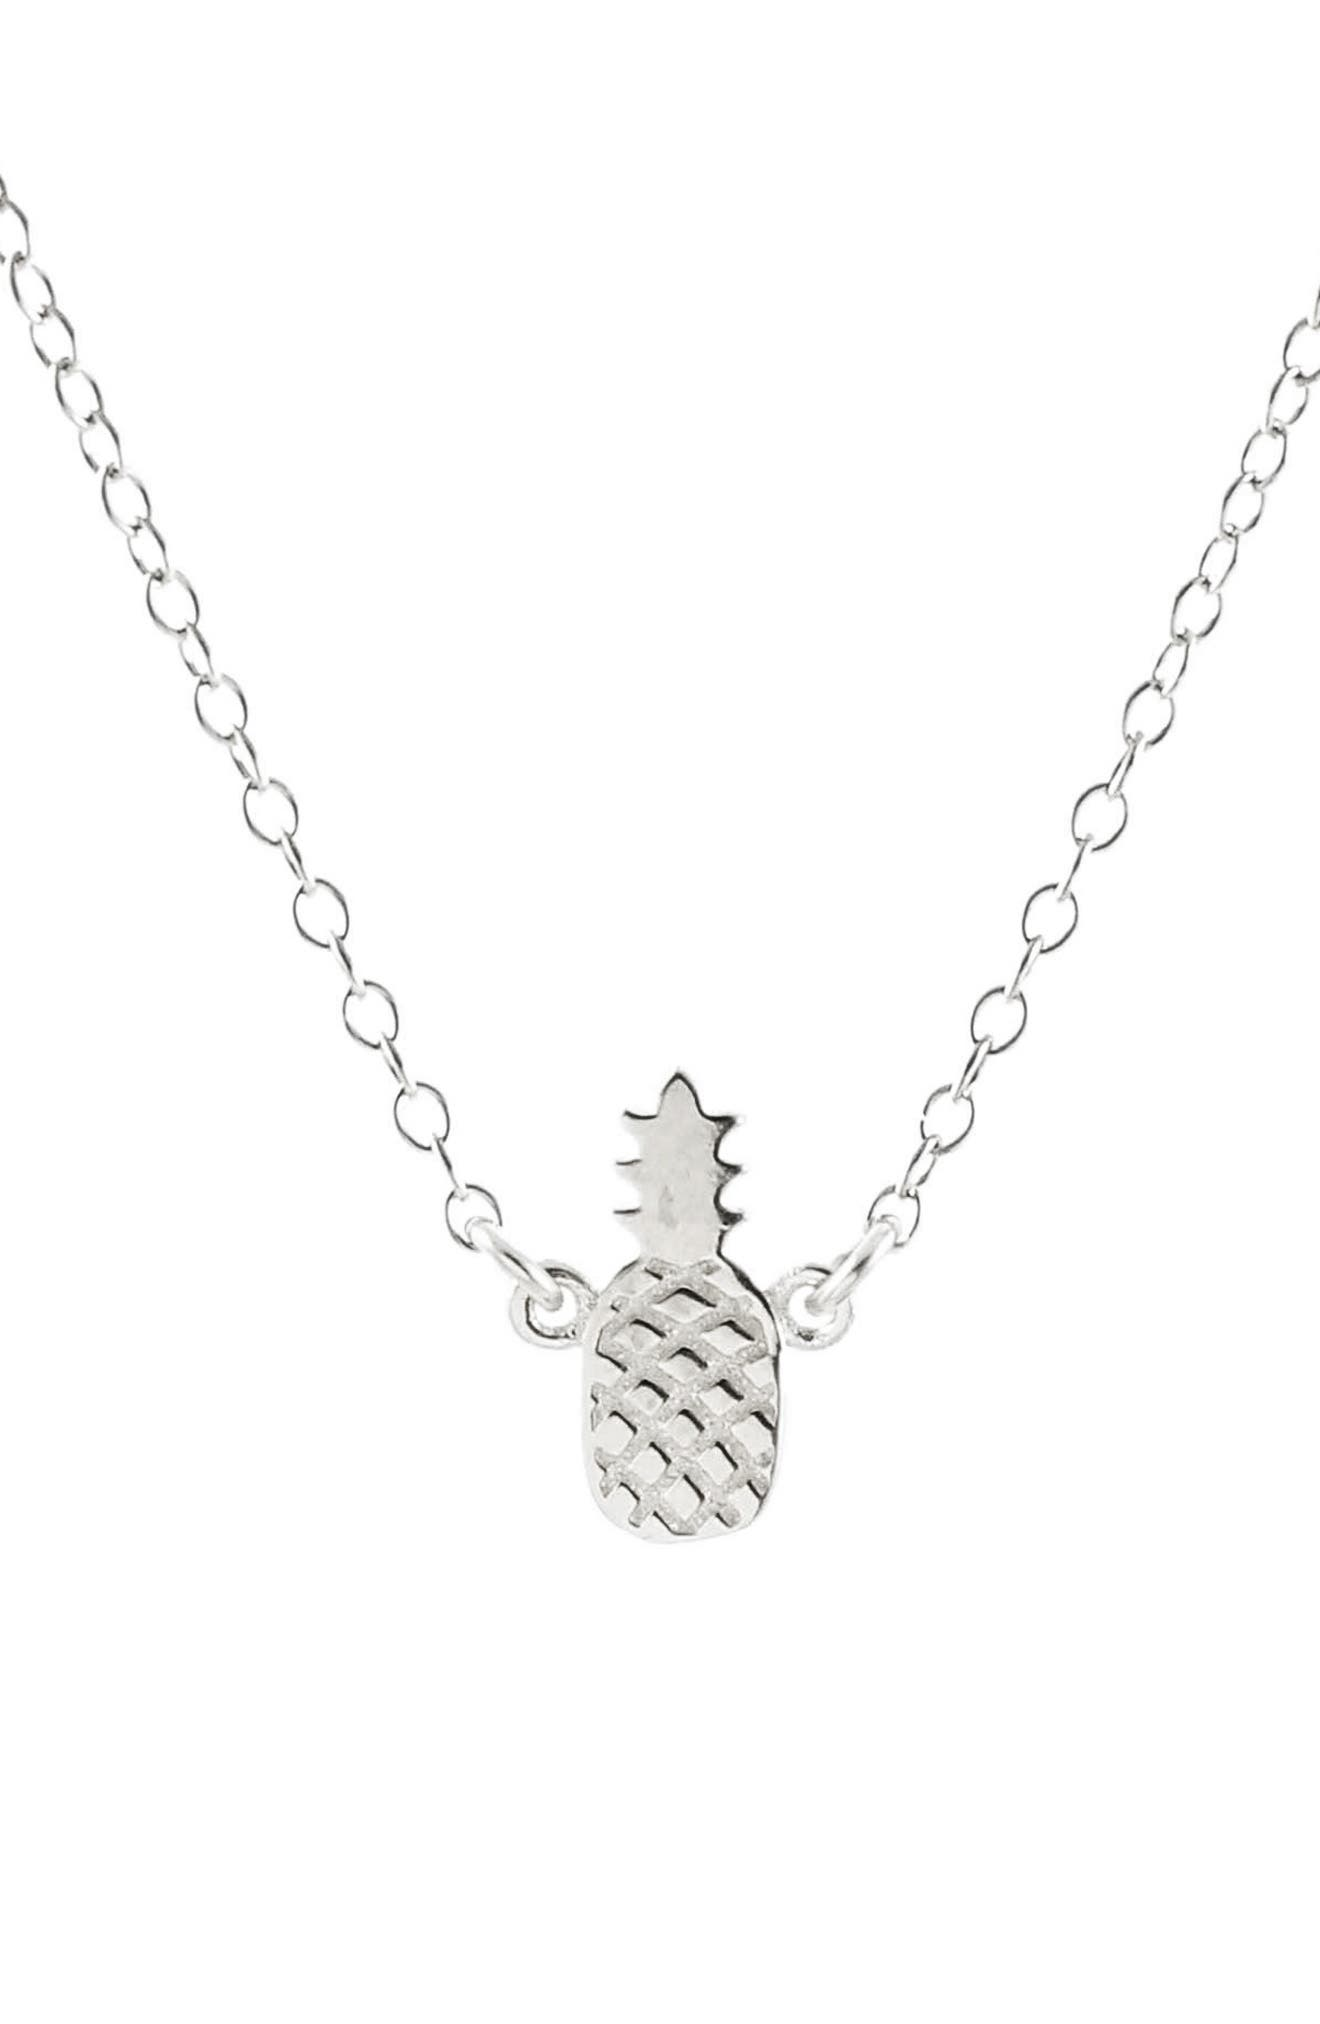 Pineapple Charm Necklace,                             Main thumbnail 1, color,                             040